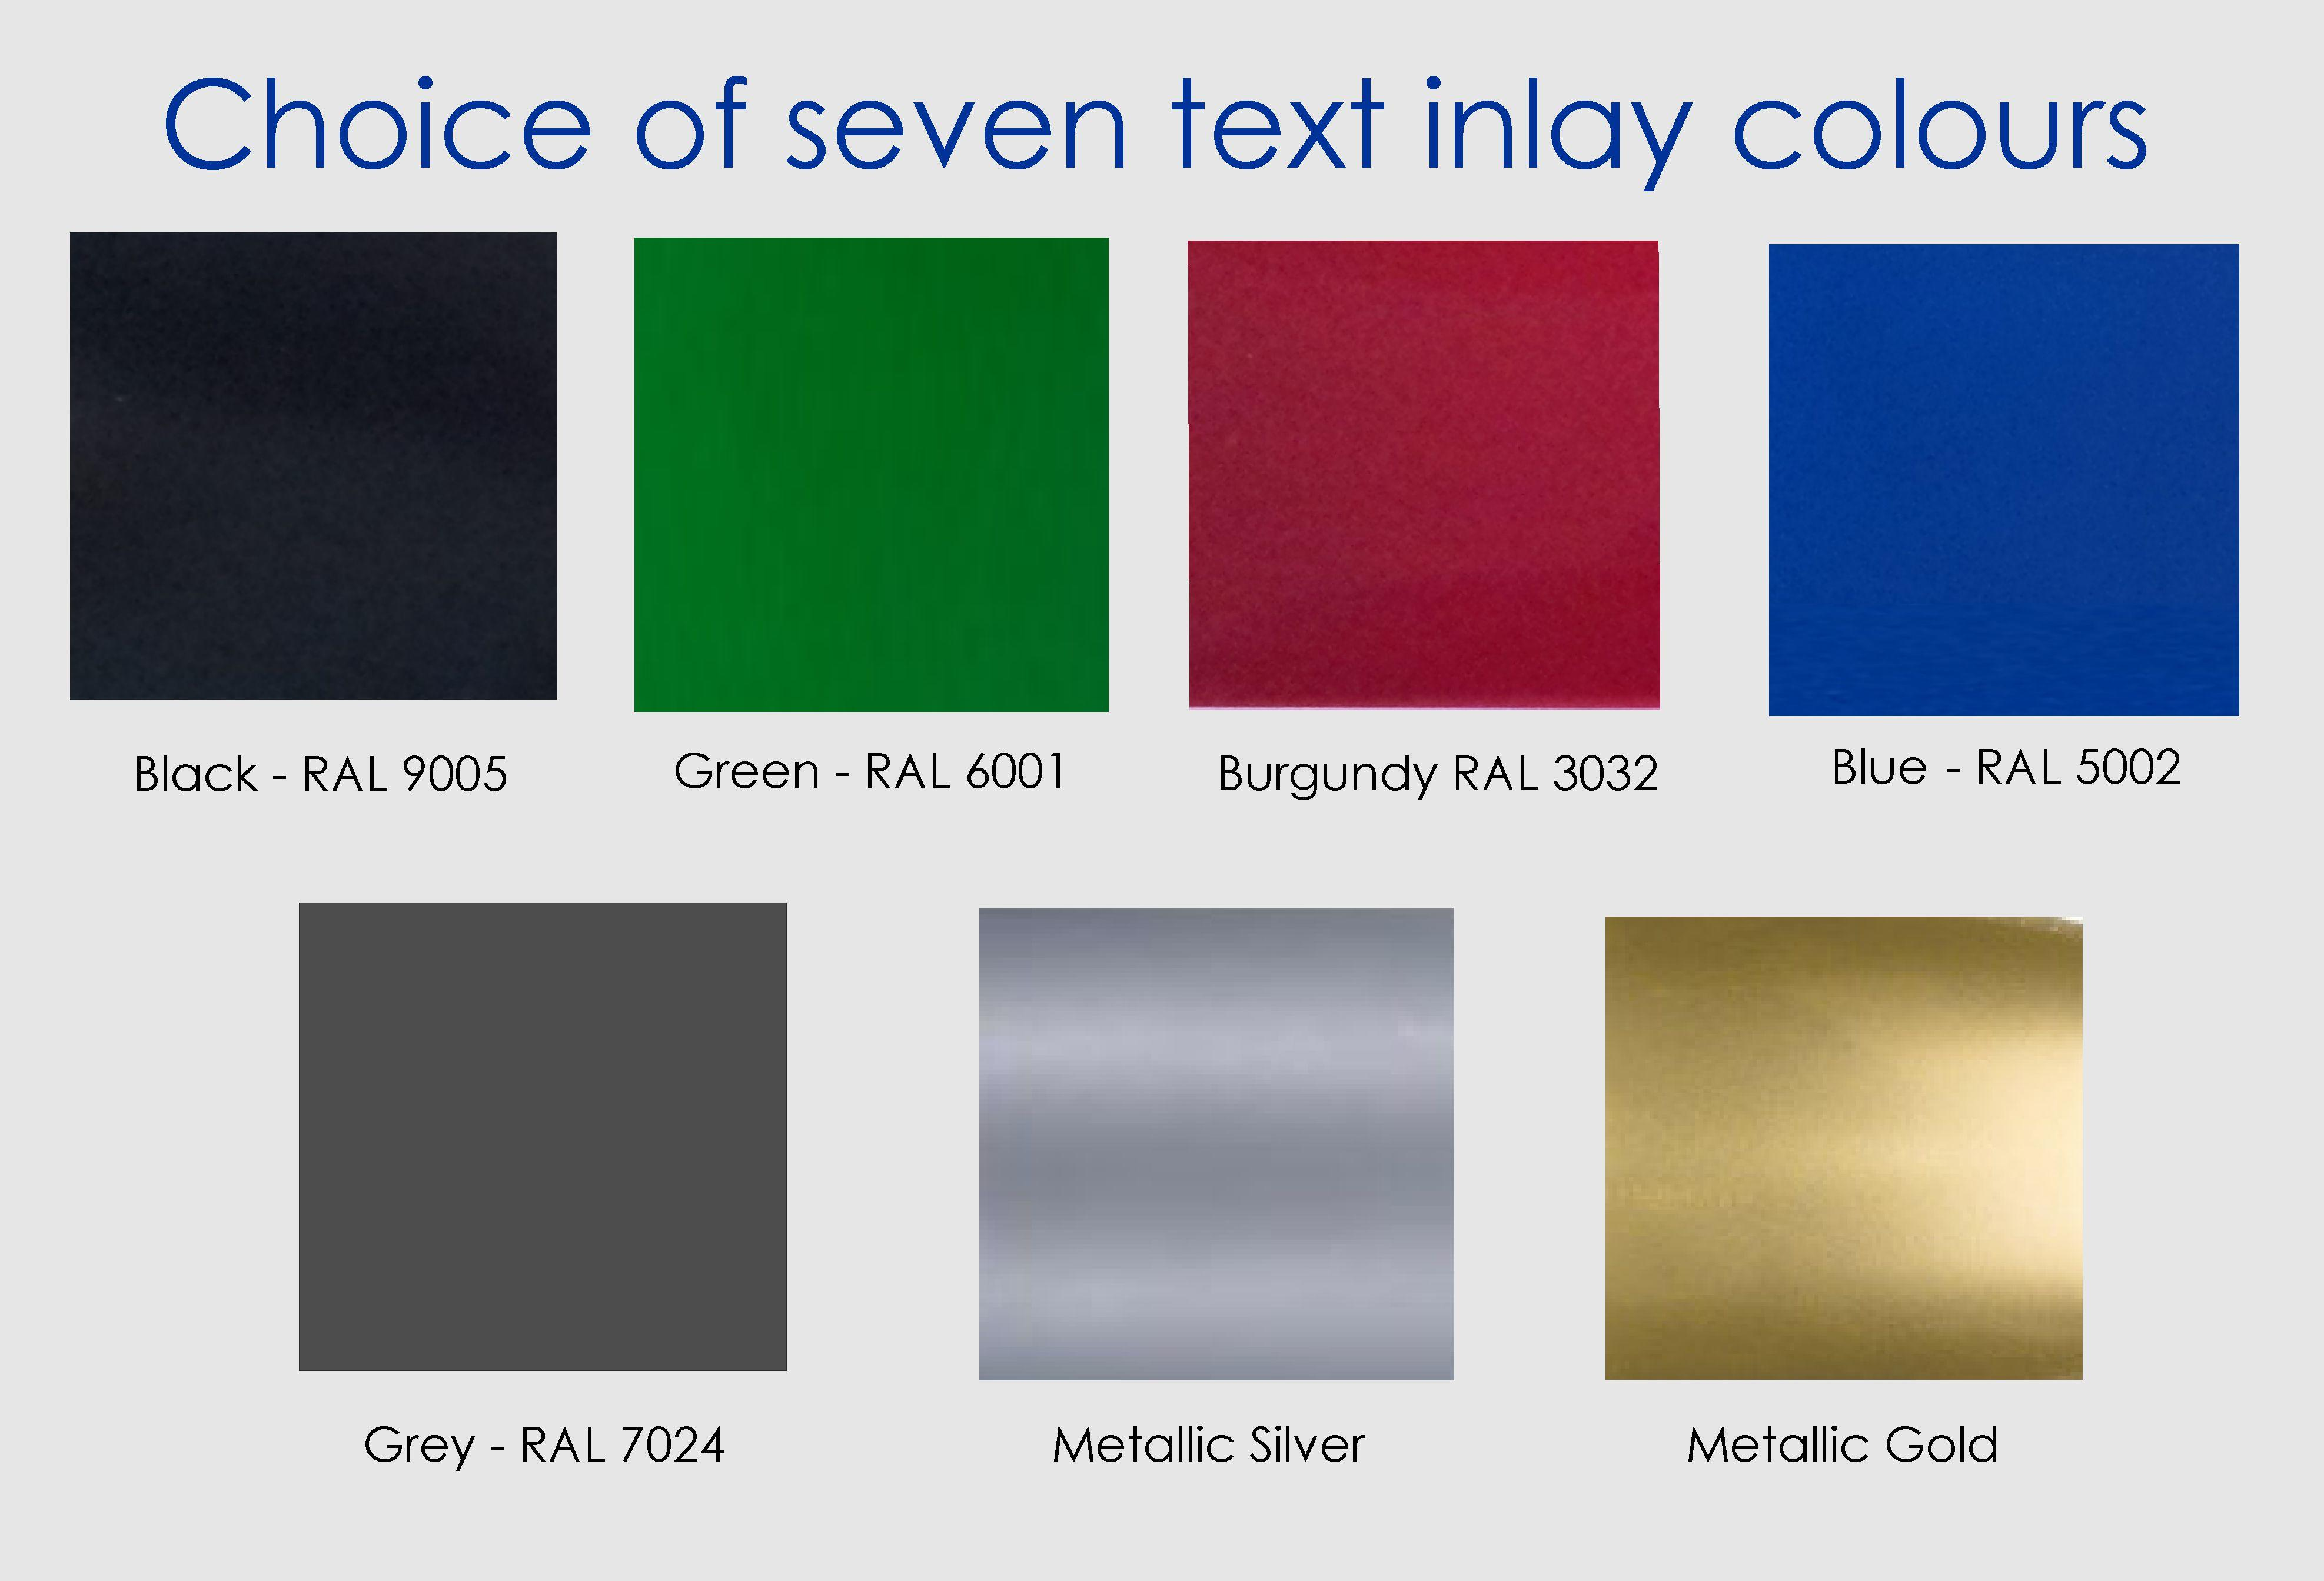 Colour chart showing 7 inlay colours for white house signs